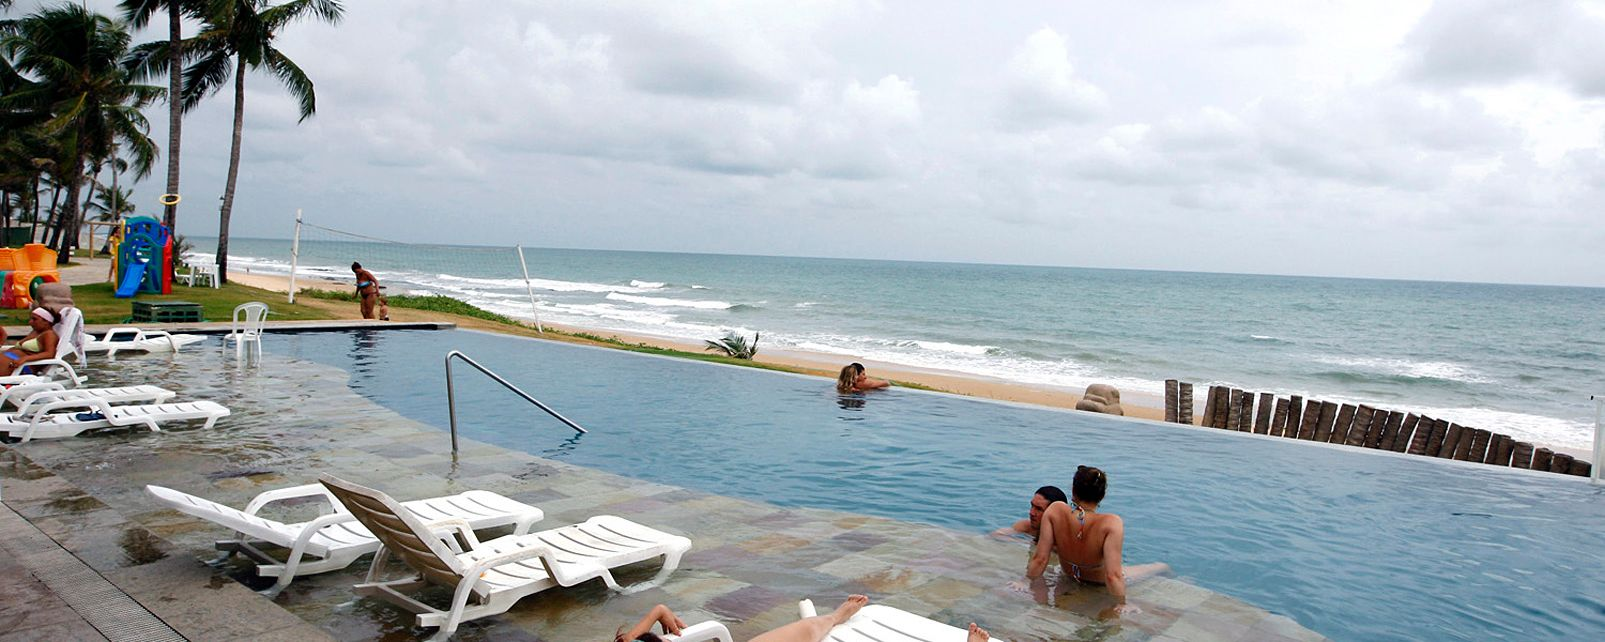 Hotel Vila Do Mar in Natal, Brazil